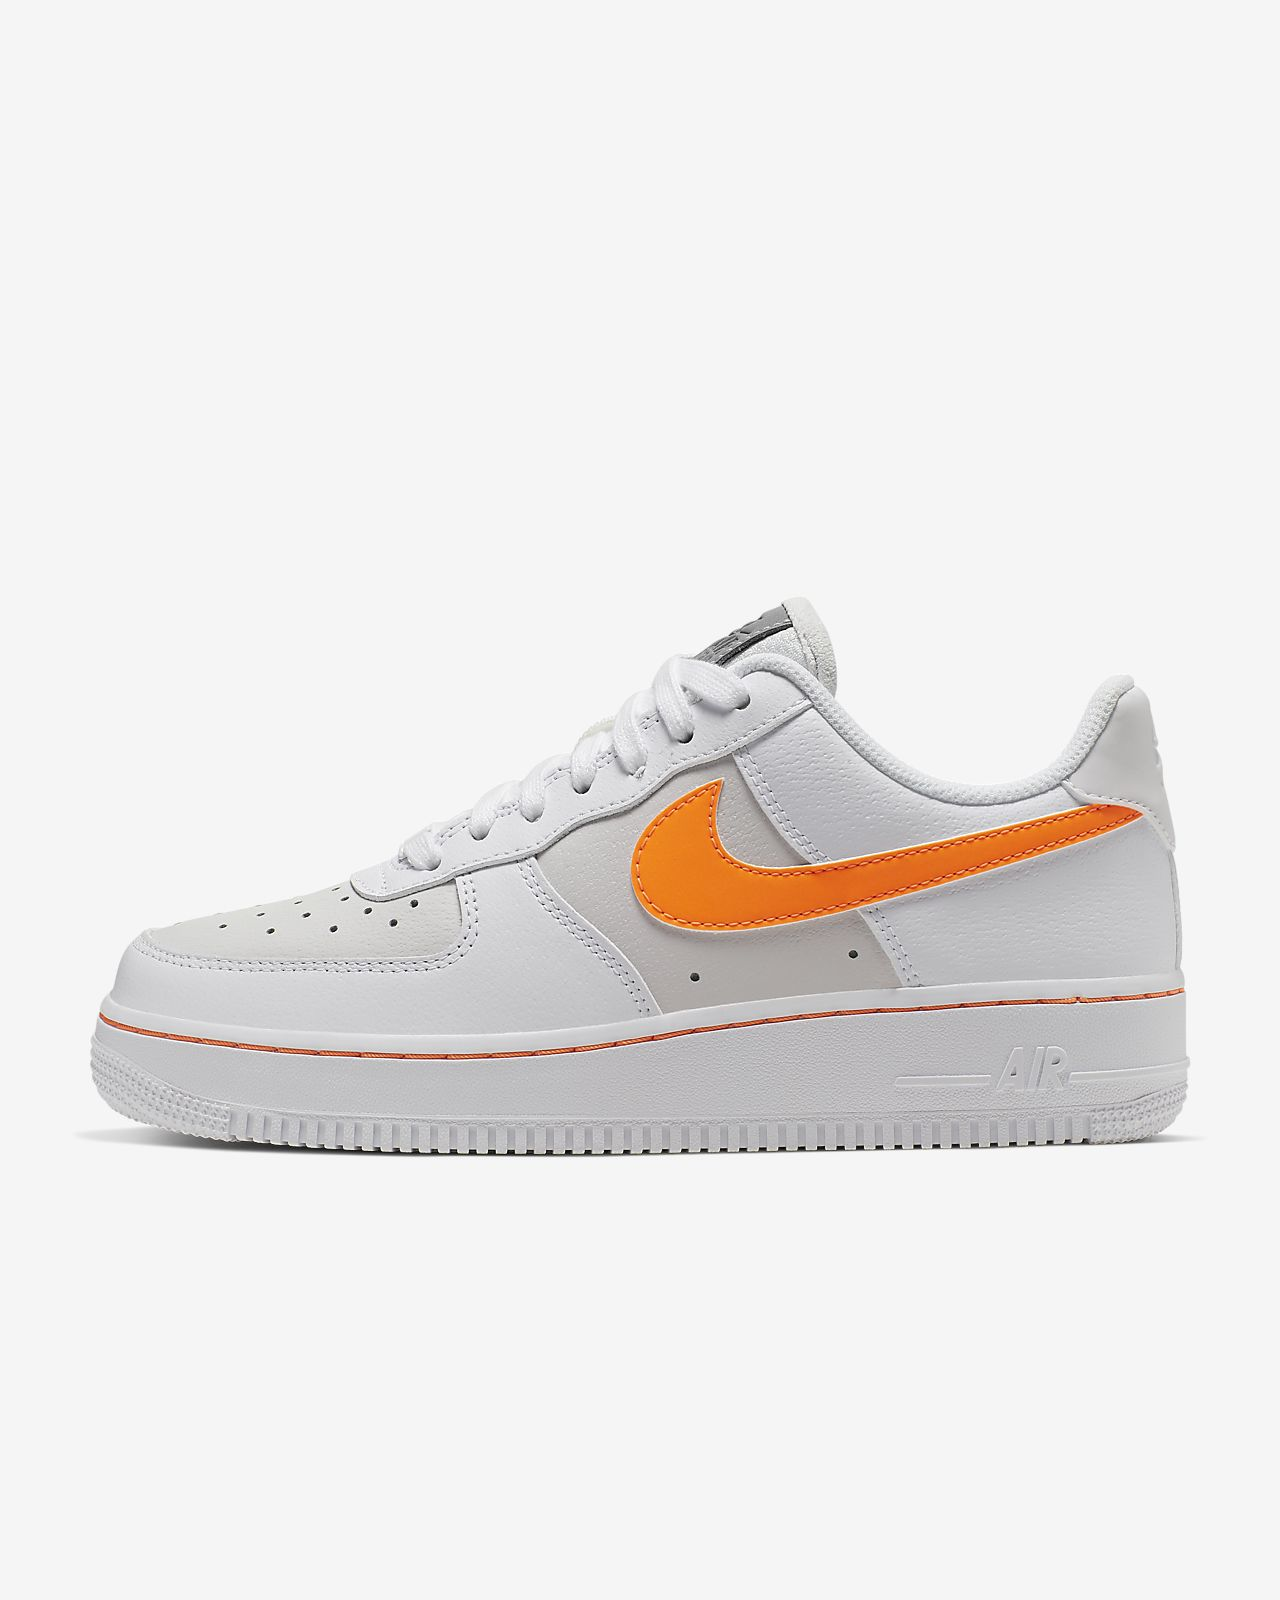 Nike Air Force 1 Low női cipő